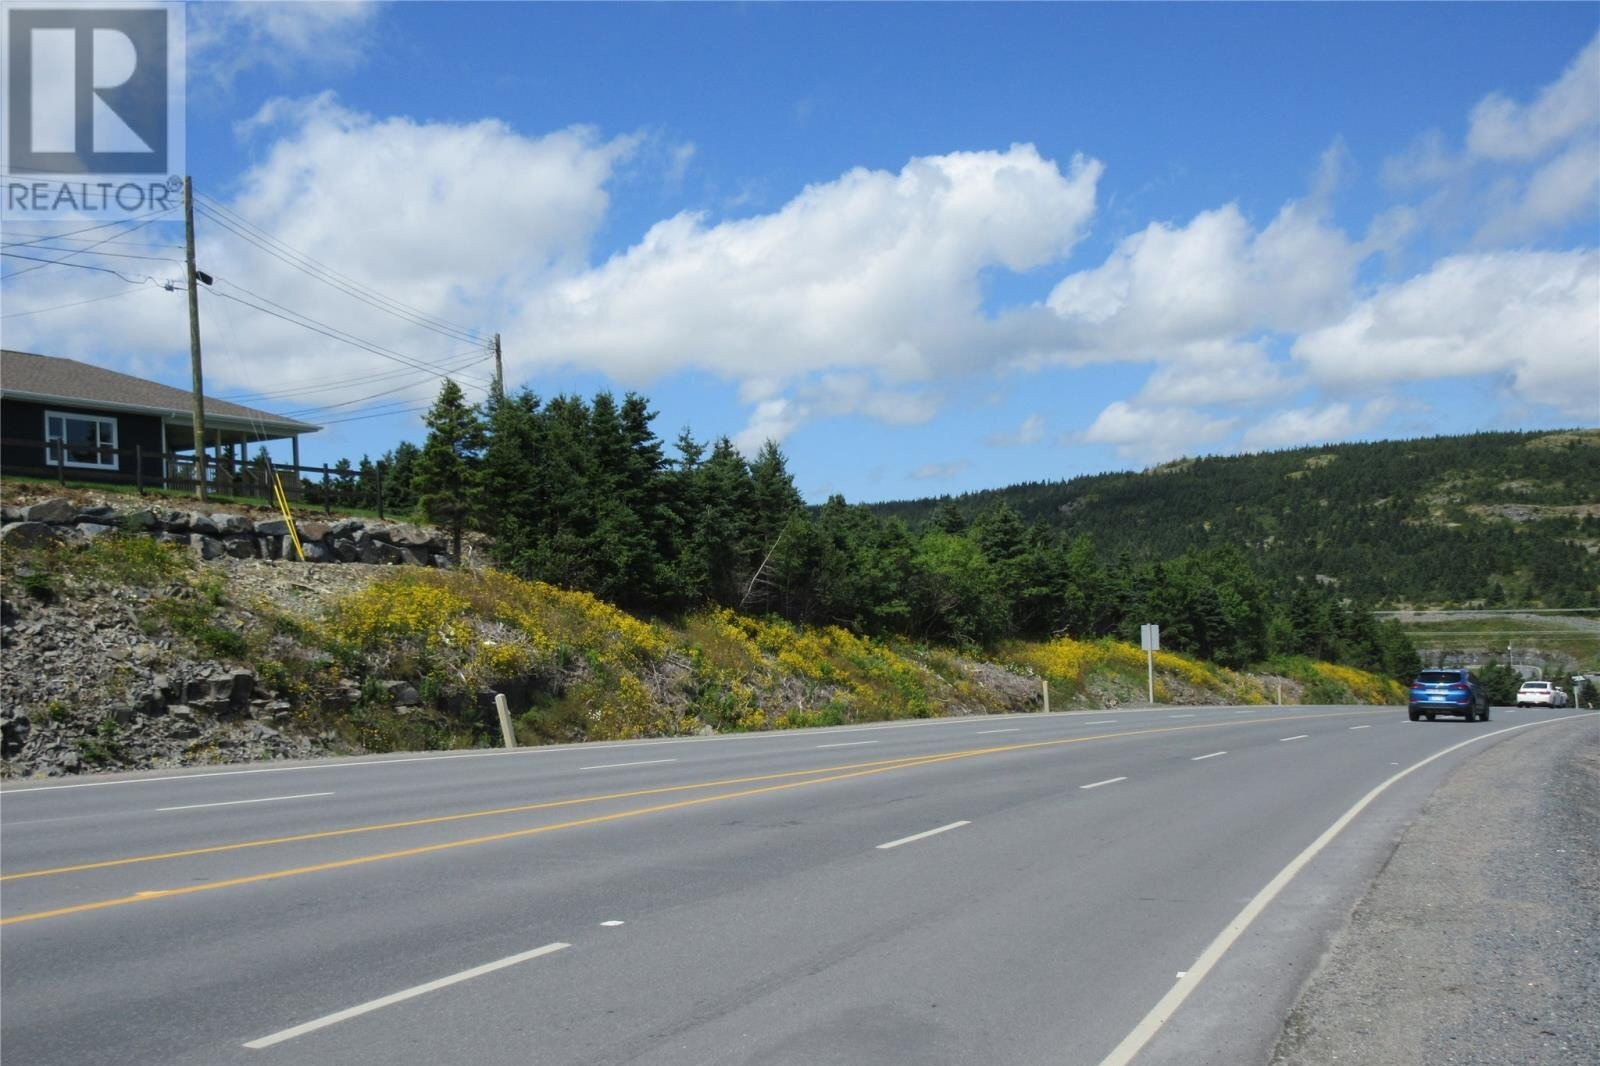 Home for sale at 0 Fortunes Rd Carbonear Newfoundland - MLS: 1218173